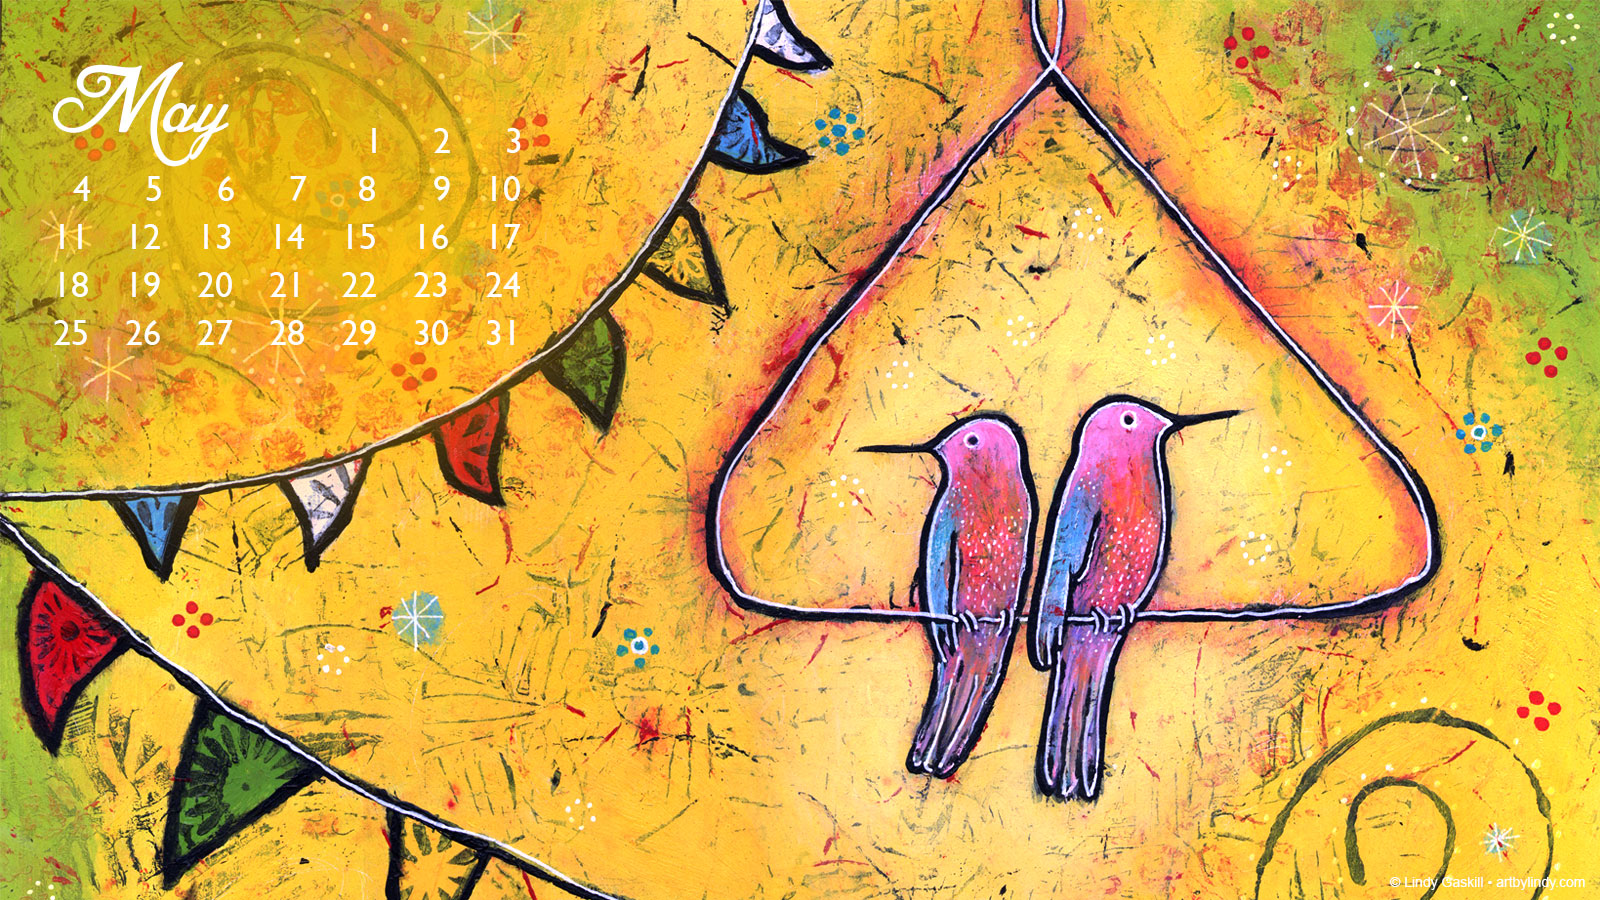 May Desktop Wallpaper Calendar - Art by Lindy